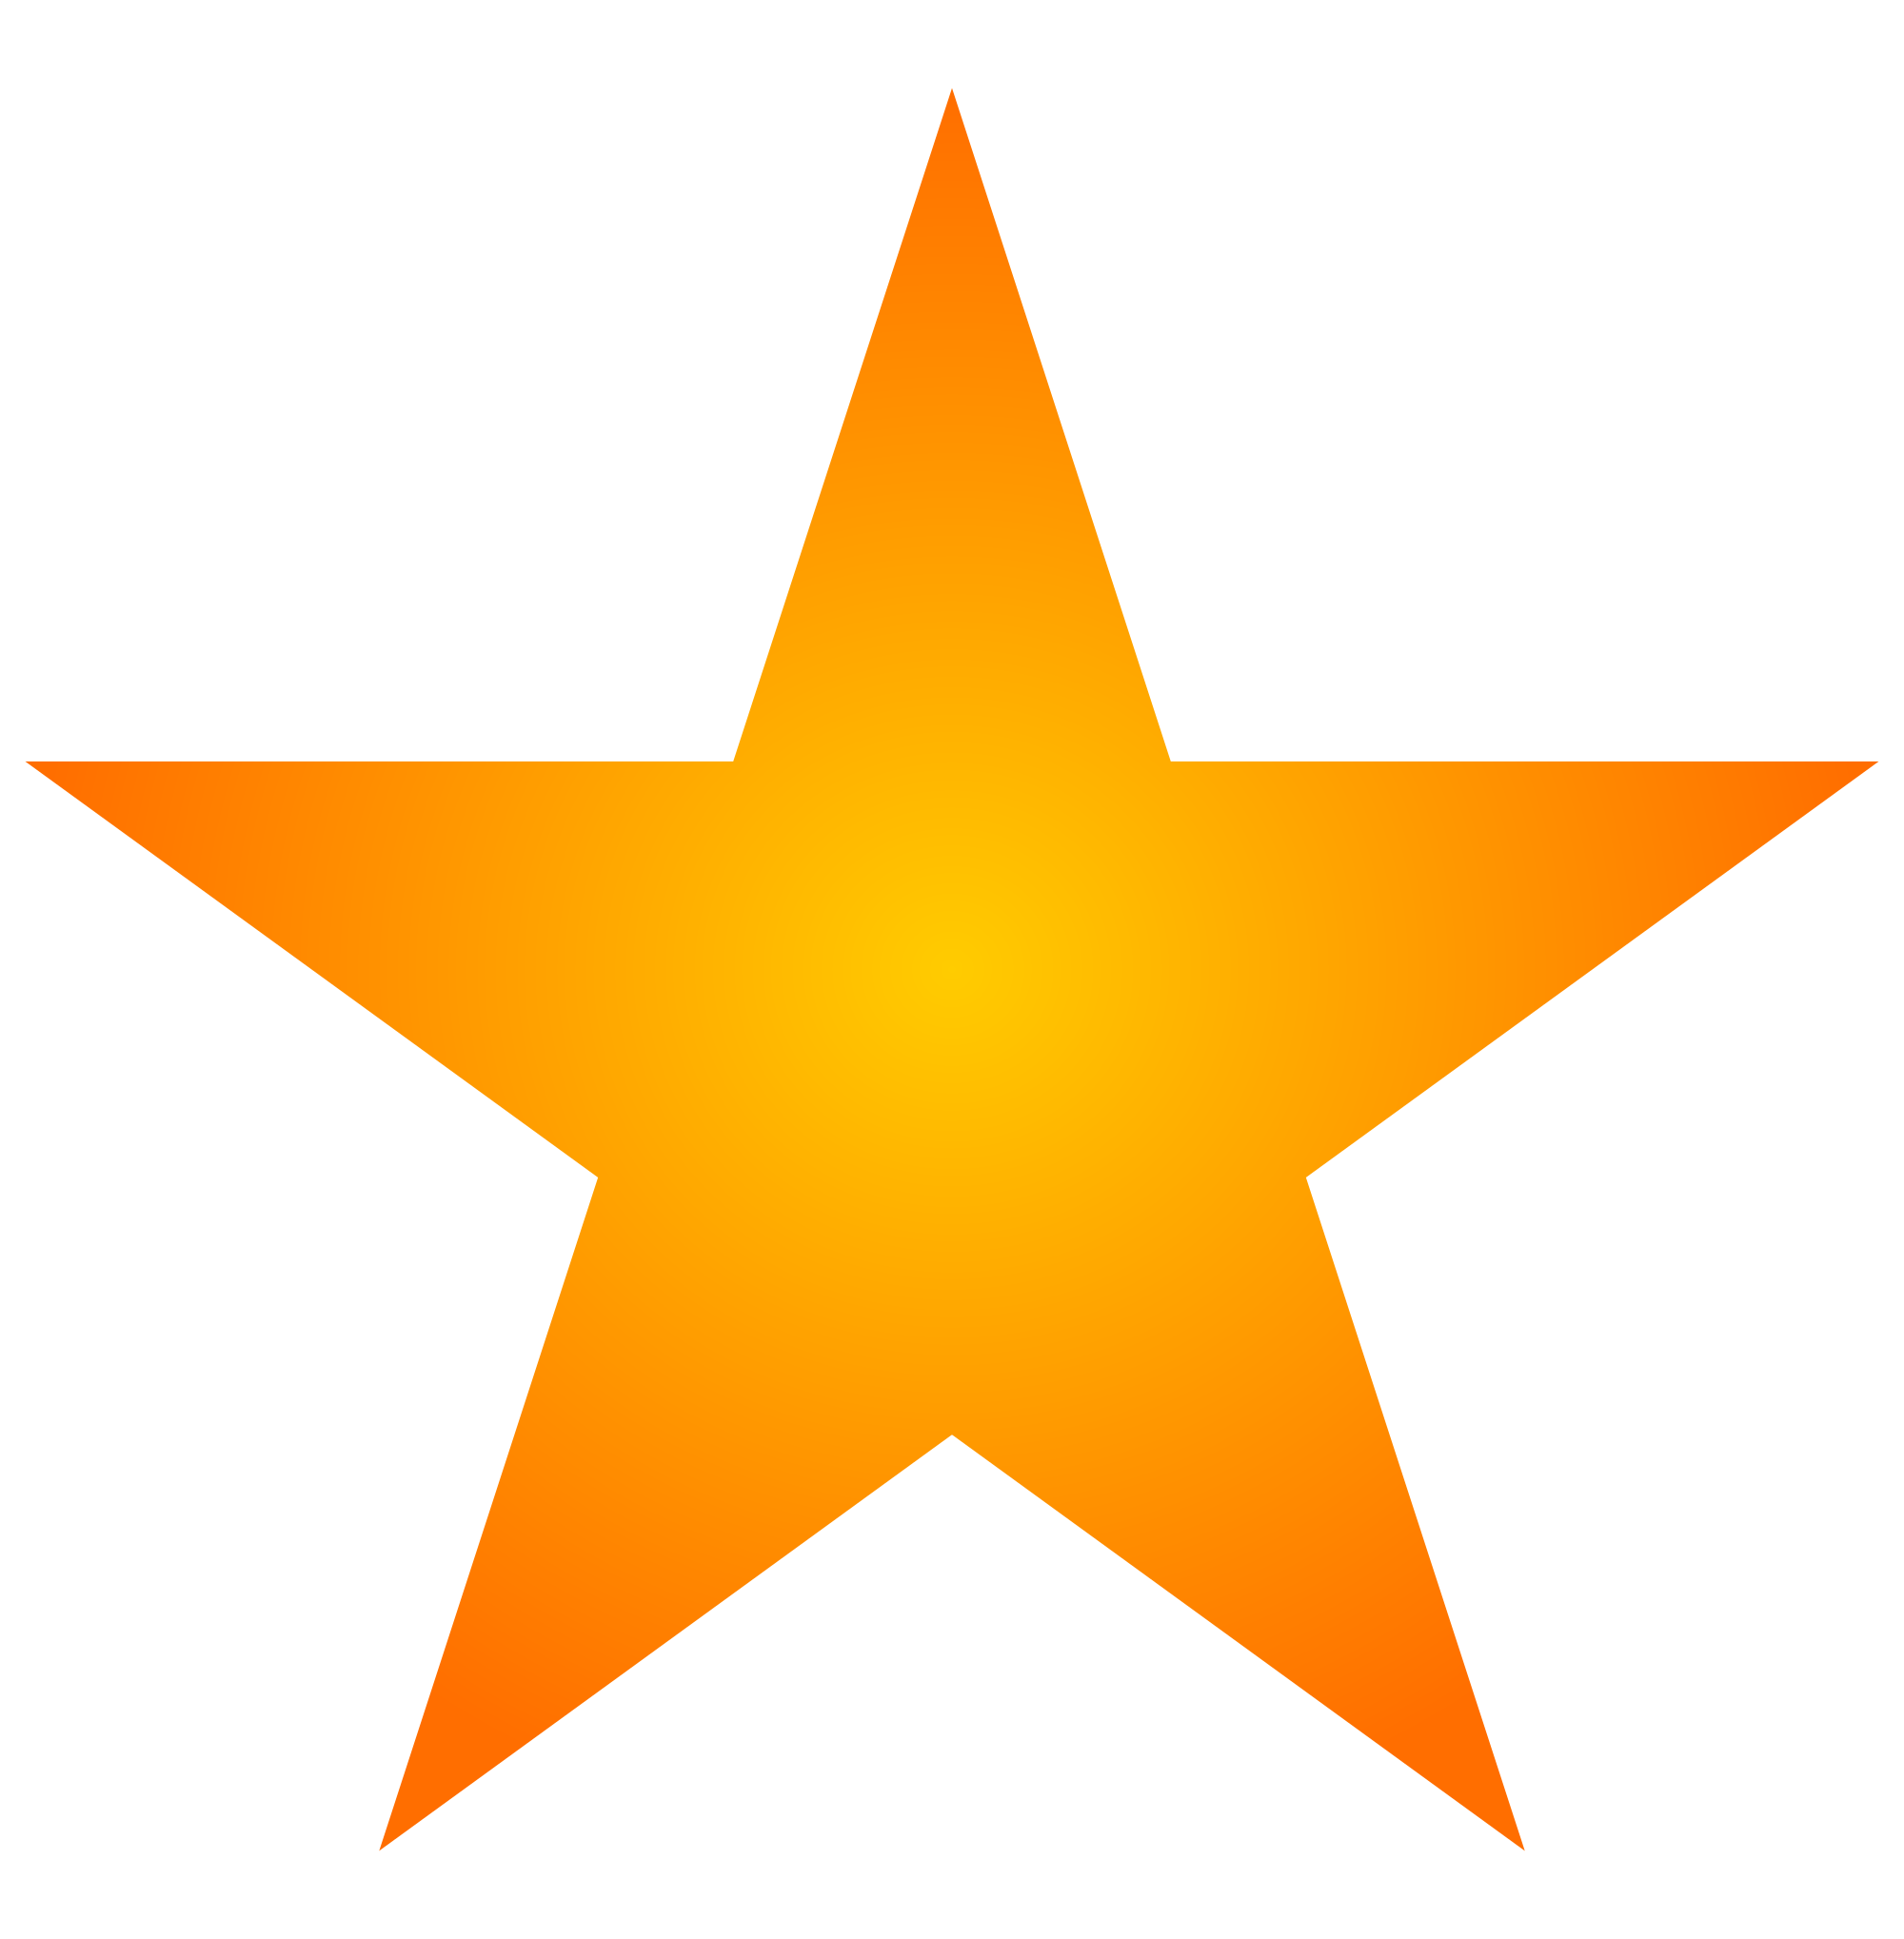 Free 5 Point Star Png, Download Free Clip Art, Free Clip Art.